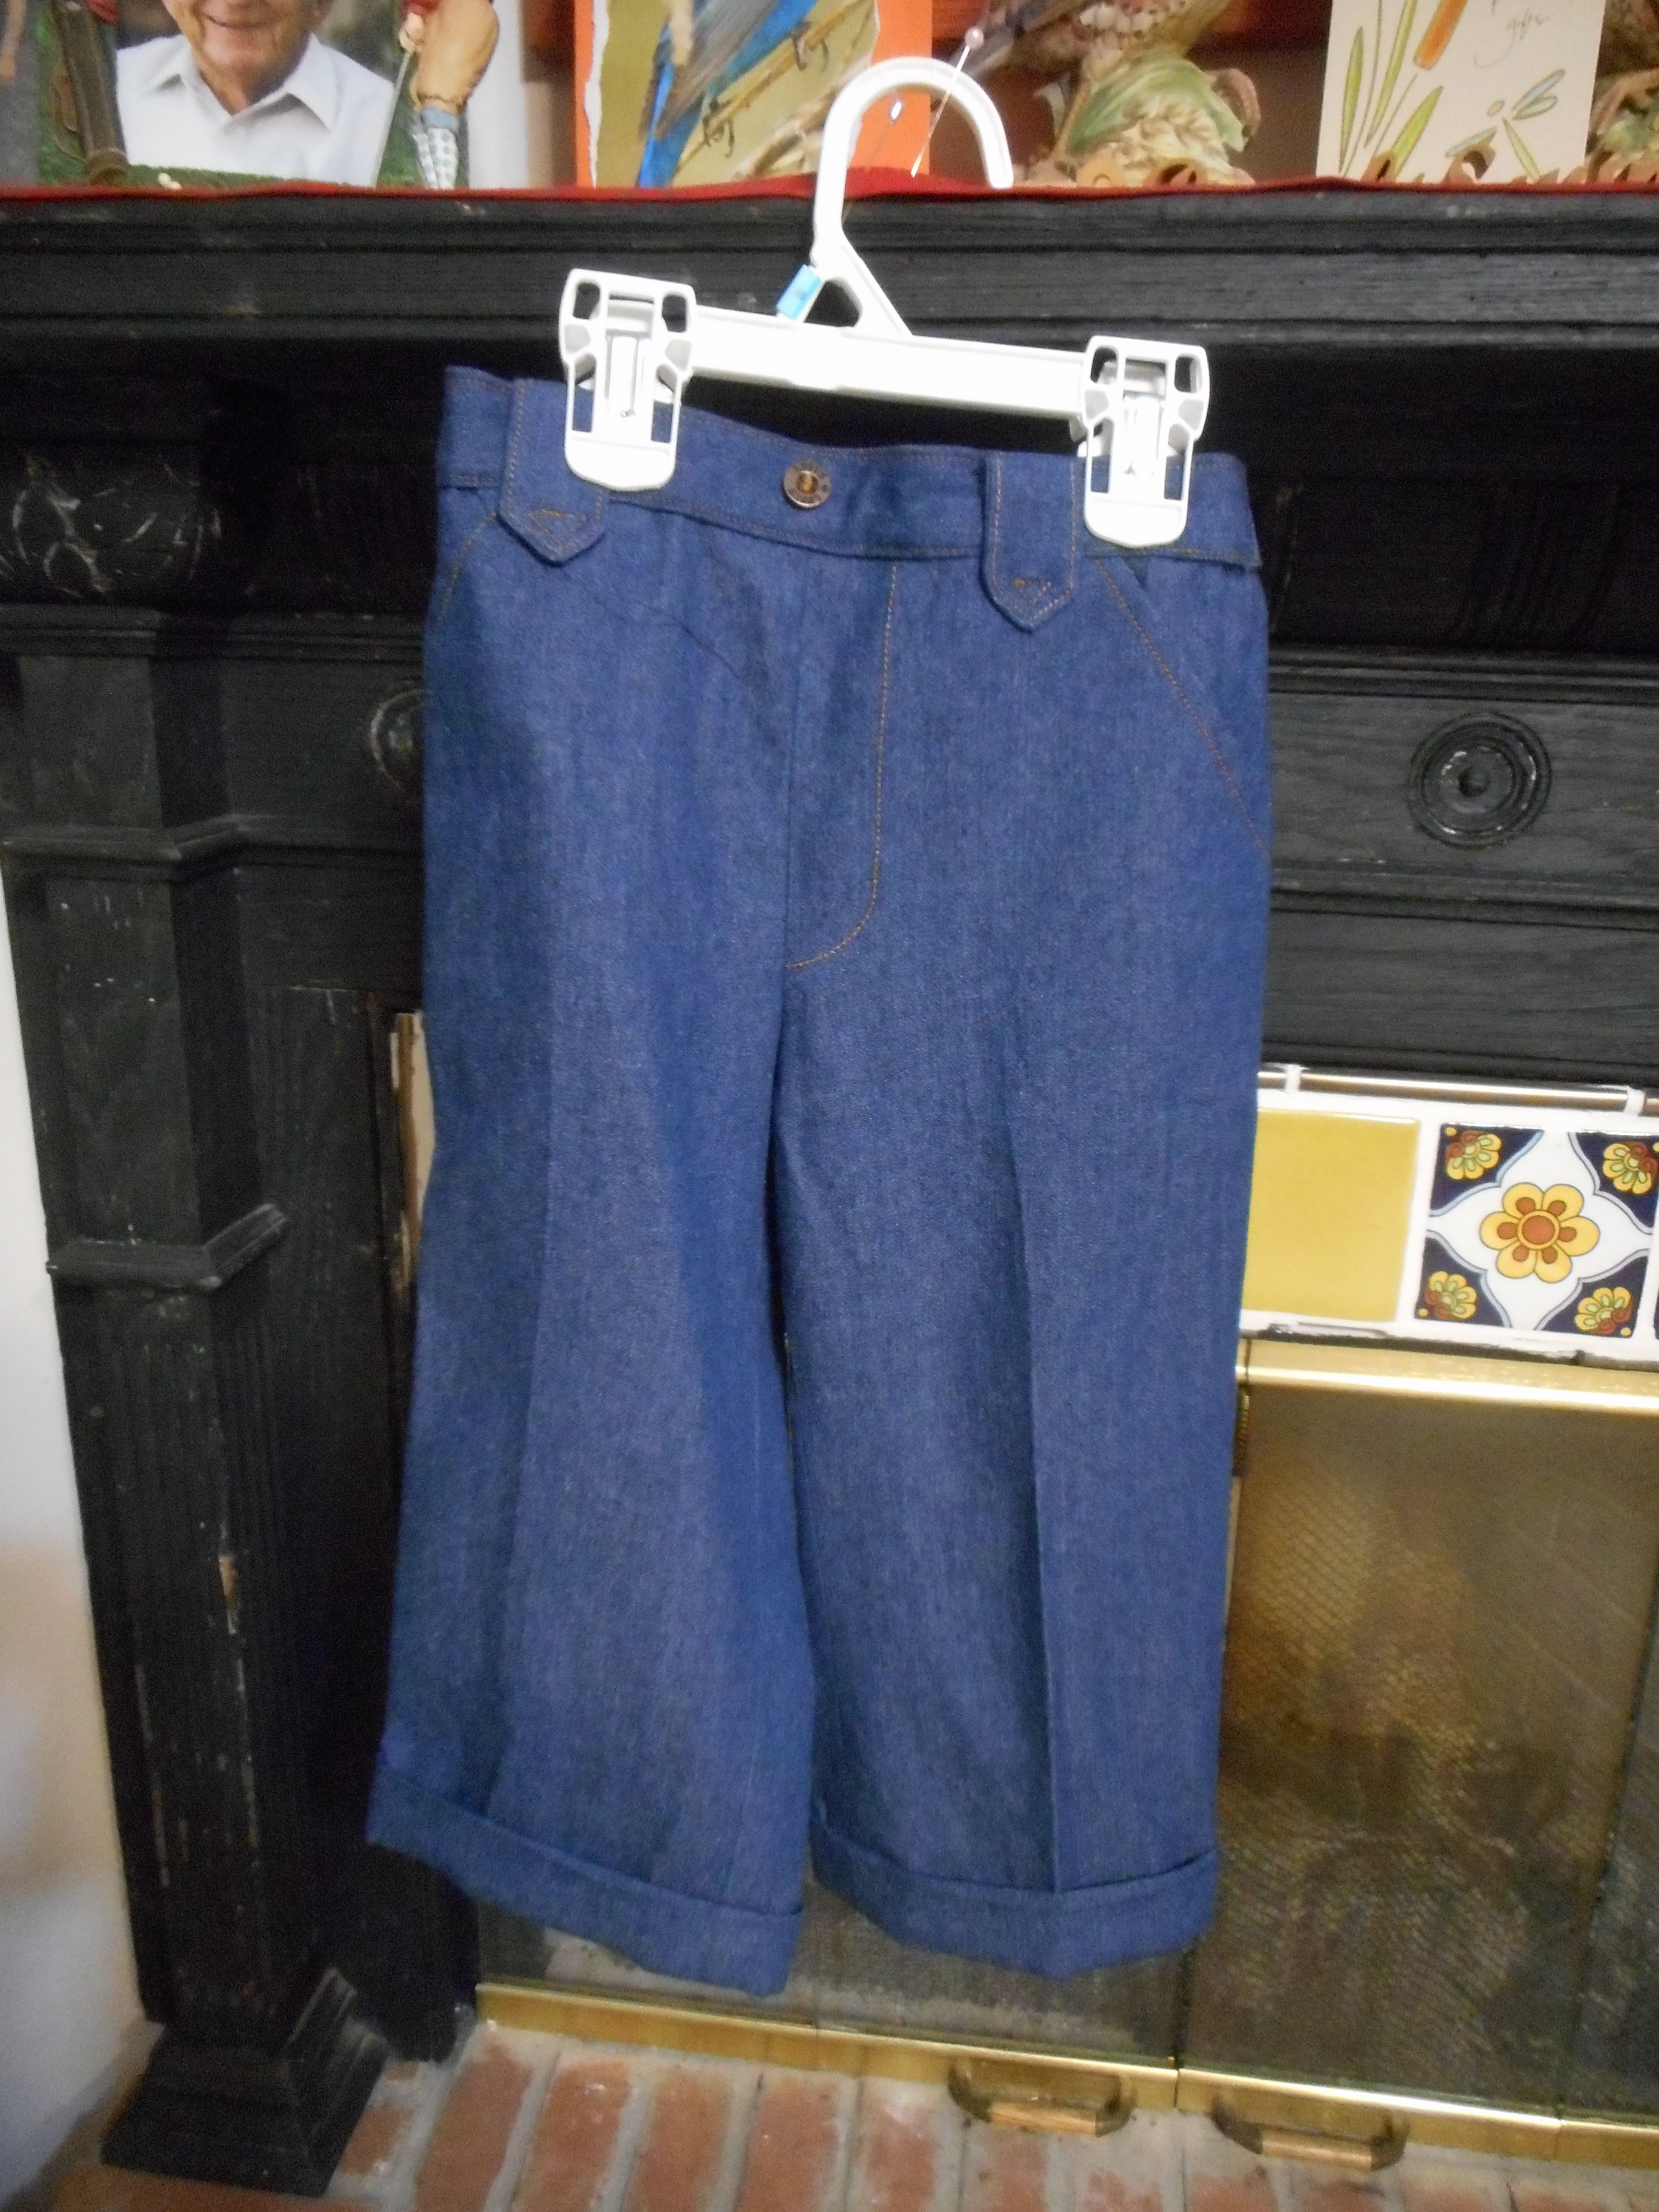 Here are some pants I made for my grandson Elias.  These have a let down hem in 3 lengths.  Simplicity 9129